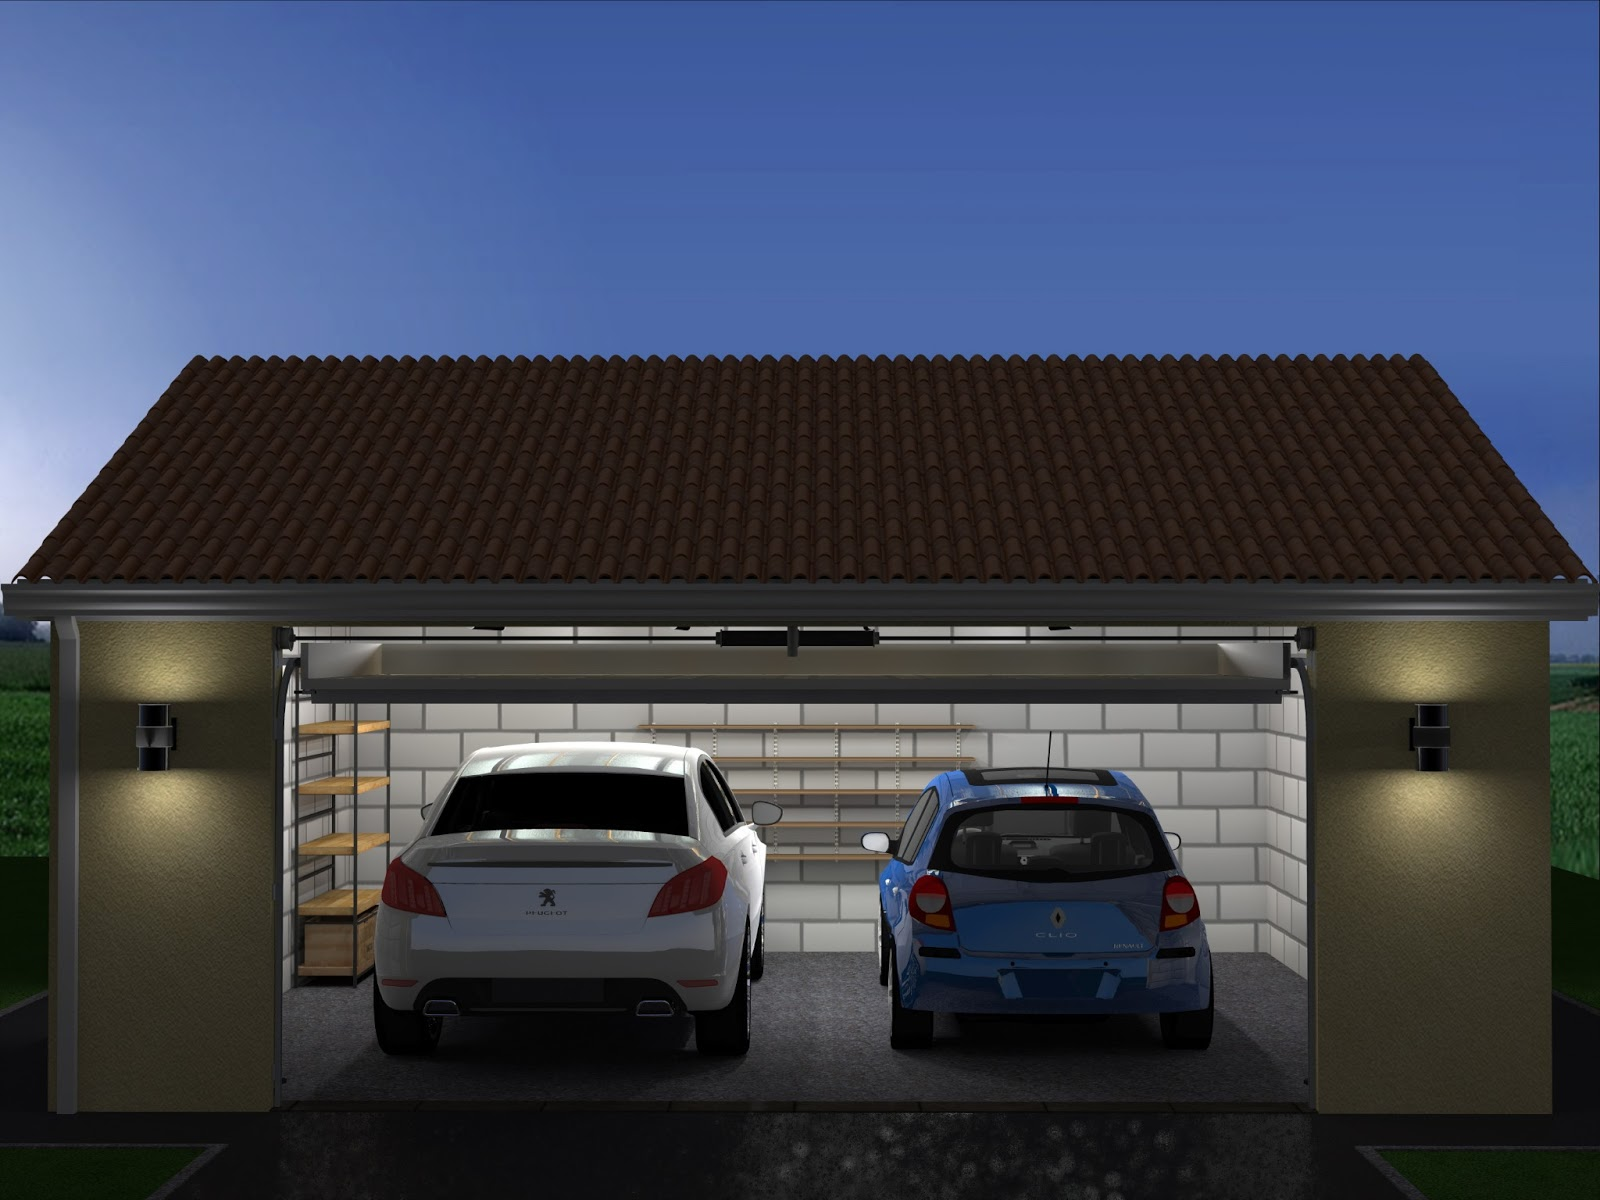 Conception construction de projets ext rieurs for Construire un garage